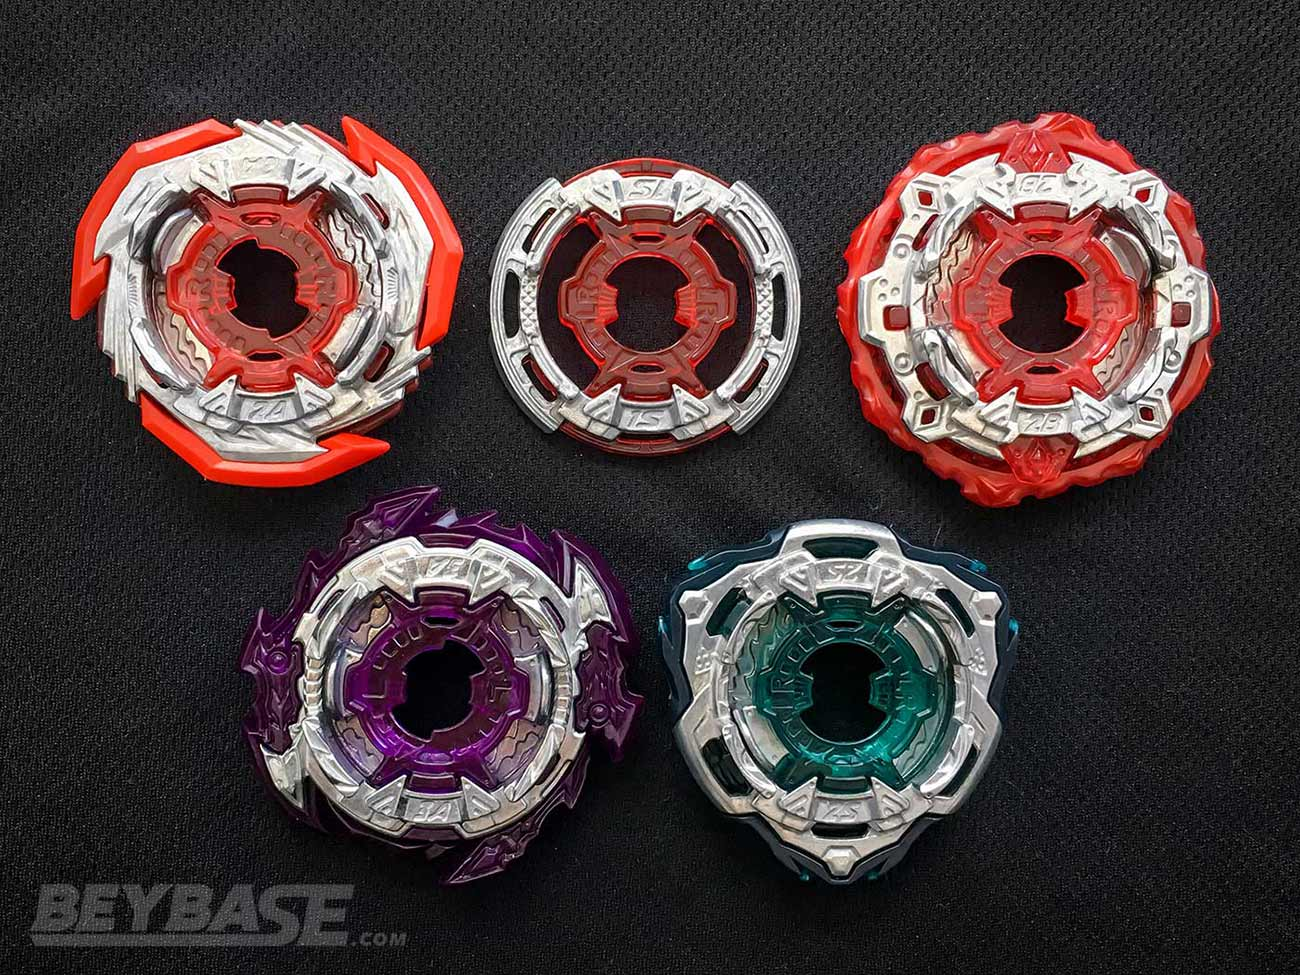 2b, 1s, 2a, 3a, 2s beyblade burst chassis